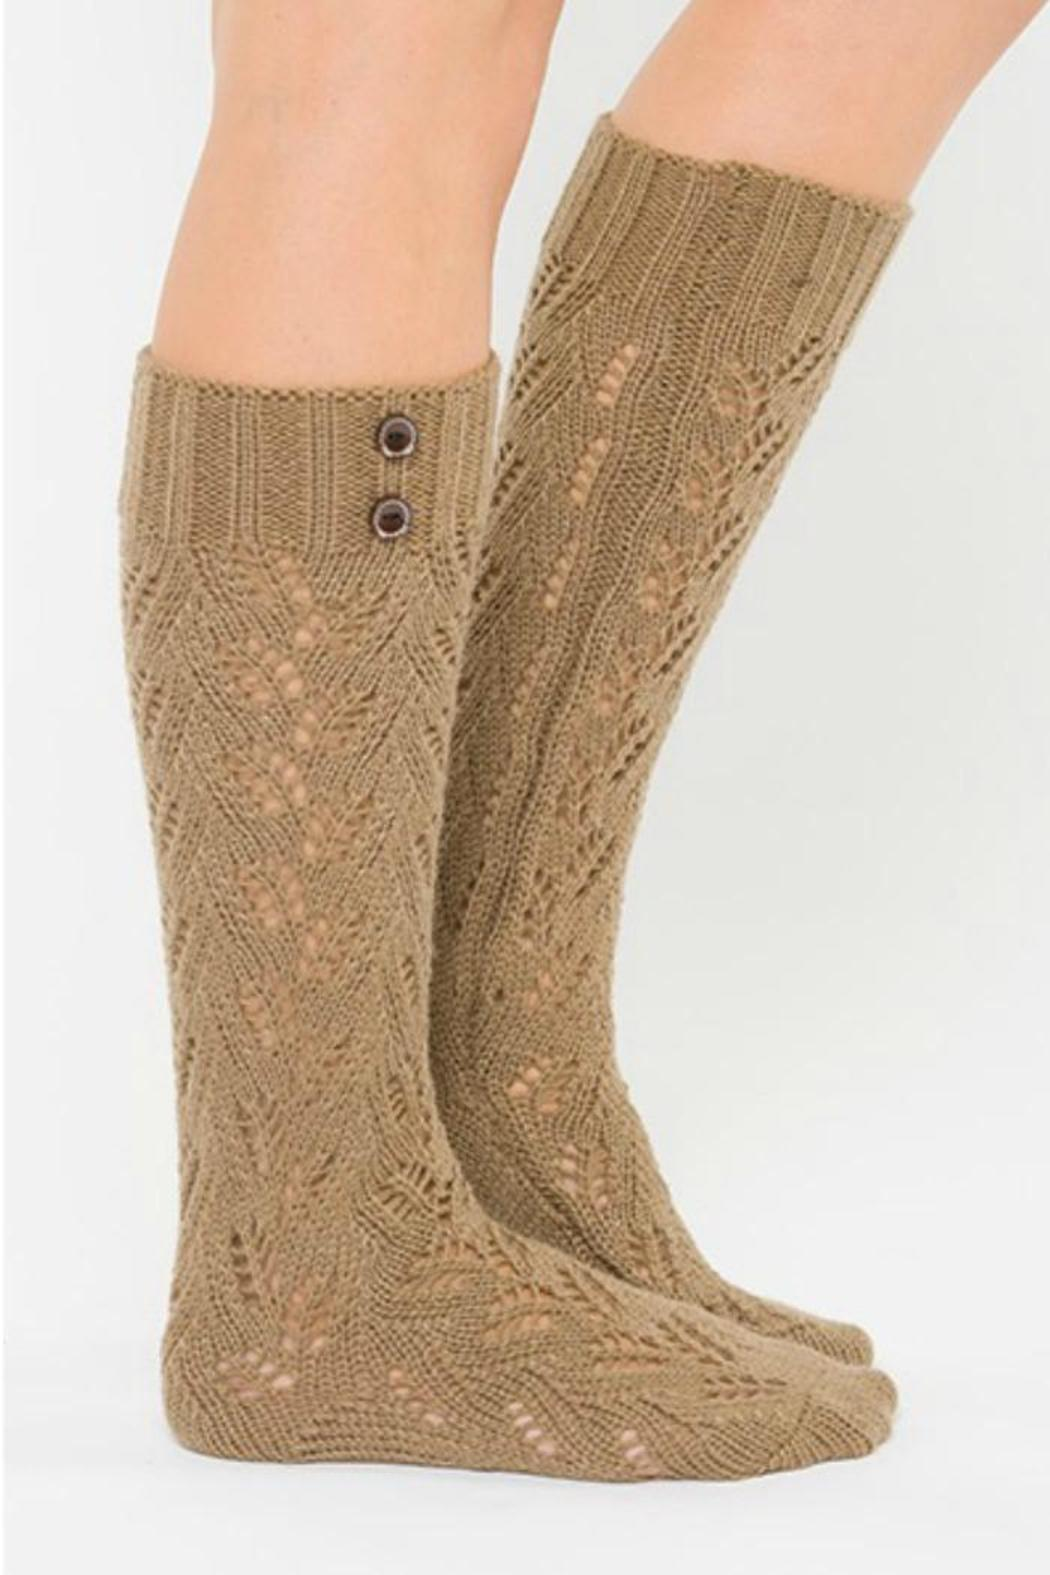 lace lemons brown boot socks from seattle by miss shasha